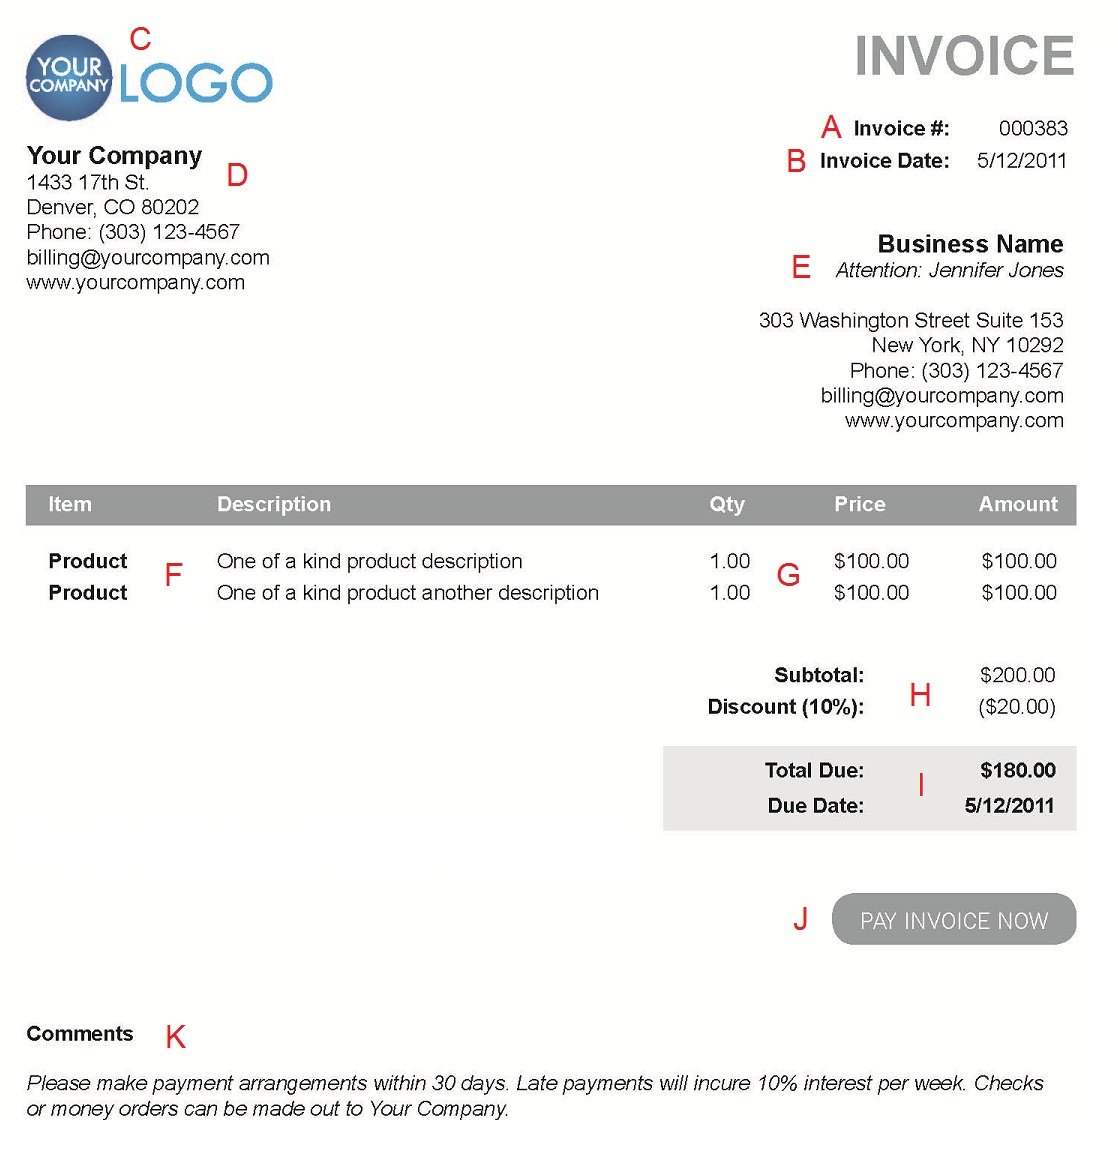 Proatmealus  Remarkable The  Different Sections Of An Electronic Payment Invoice With Interesting A  With Captivating Dillards Return Policy Without Receipt Also Create A Receipt In Addition How To Request Read Receipt In Gmail And Walmart Lost Receipt As Well As Business Tax Receipt Additionally American Depositary Receipts From Paysimplecom With Proatmealus  Interesting The  Different Sections Of An Electronic Payment Invoice With Captivating A  And Remarkable Dillards Return Policy Without Receipt Also Create A Receipt In Addition How To Request Read Receipt In Gmail From Paysimplecom